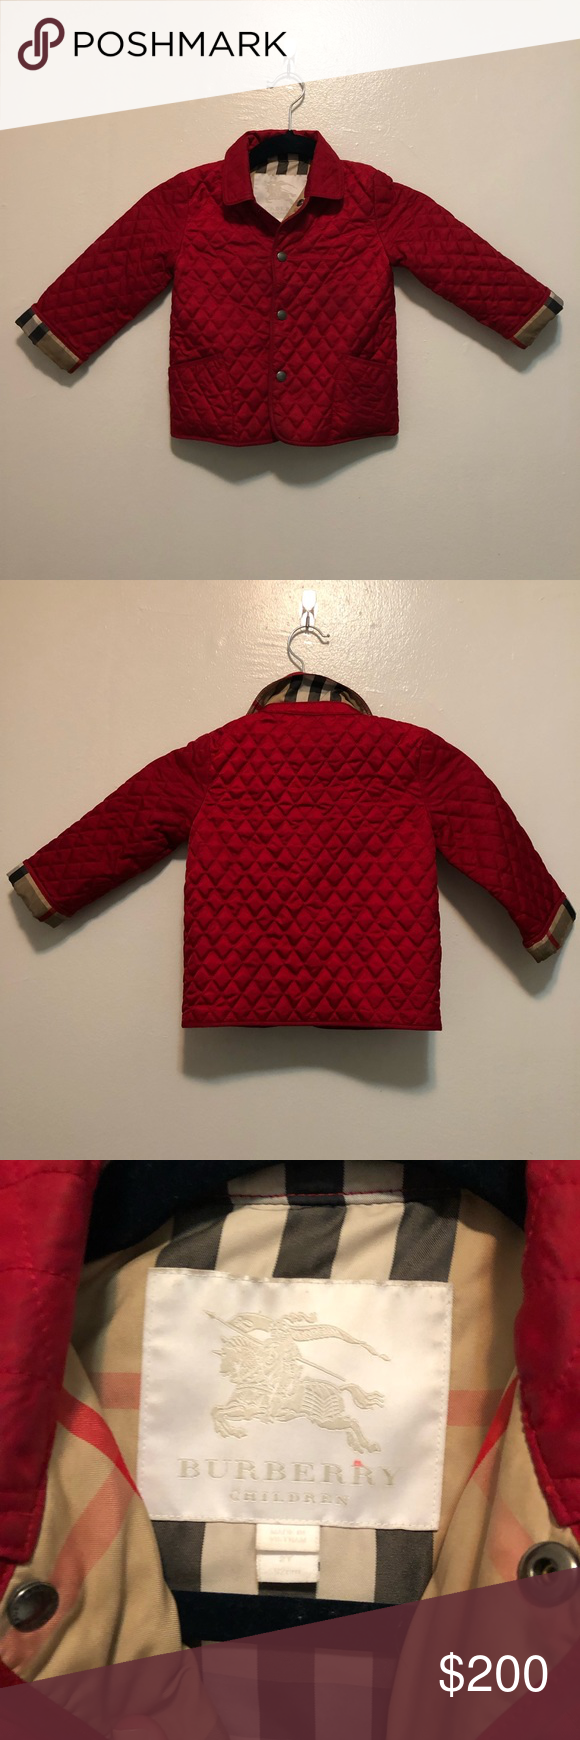 9ba274d76827 Burberry Girls  Red Diamond Quilted Jacket Beautiful jacket from Burberry  for a toddler girl!